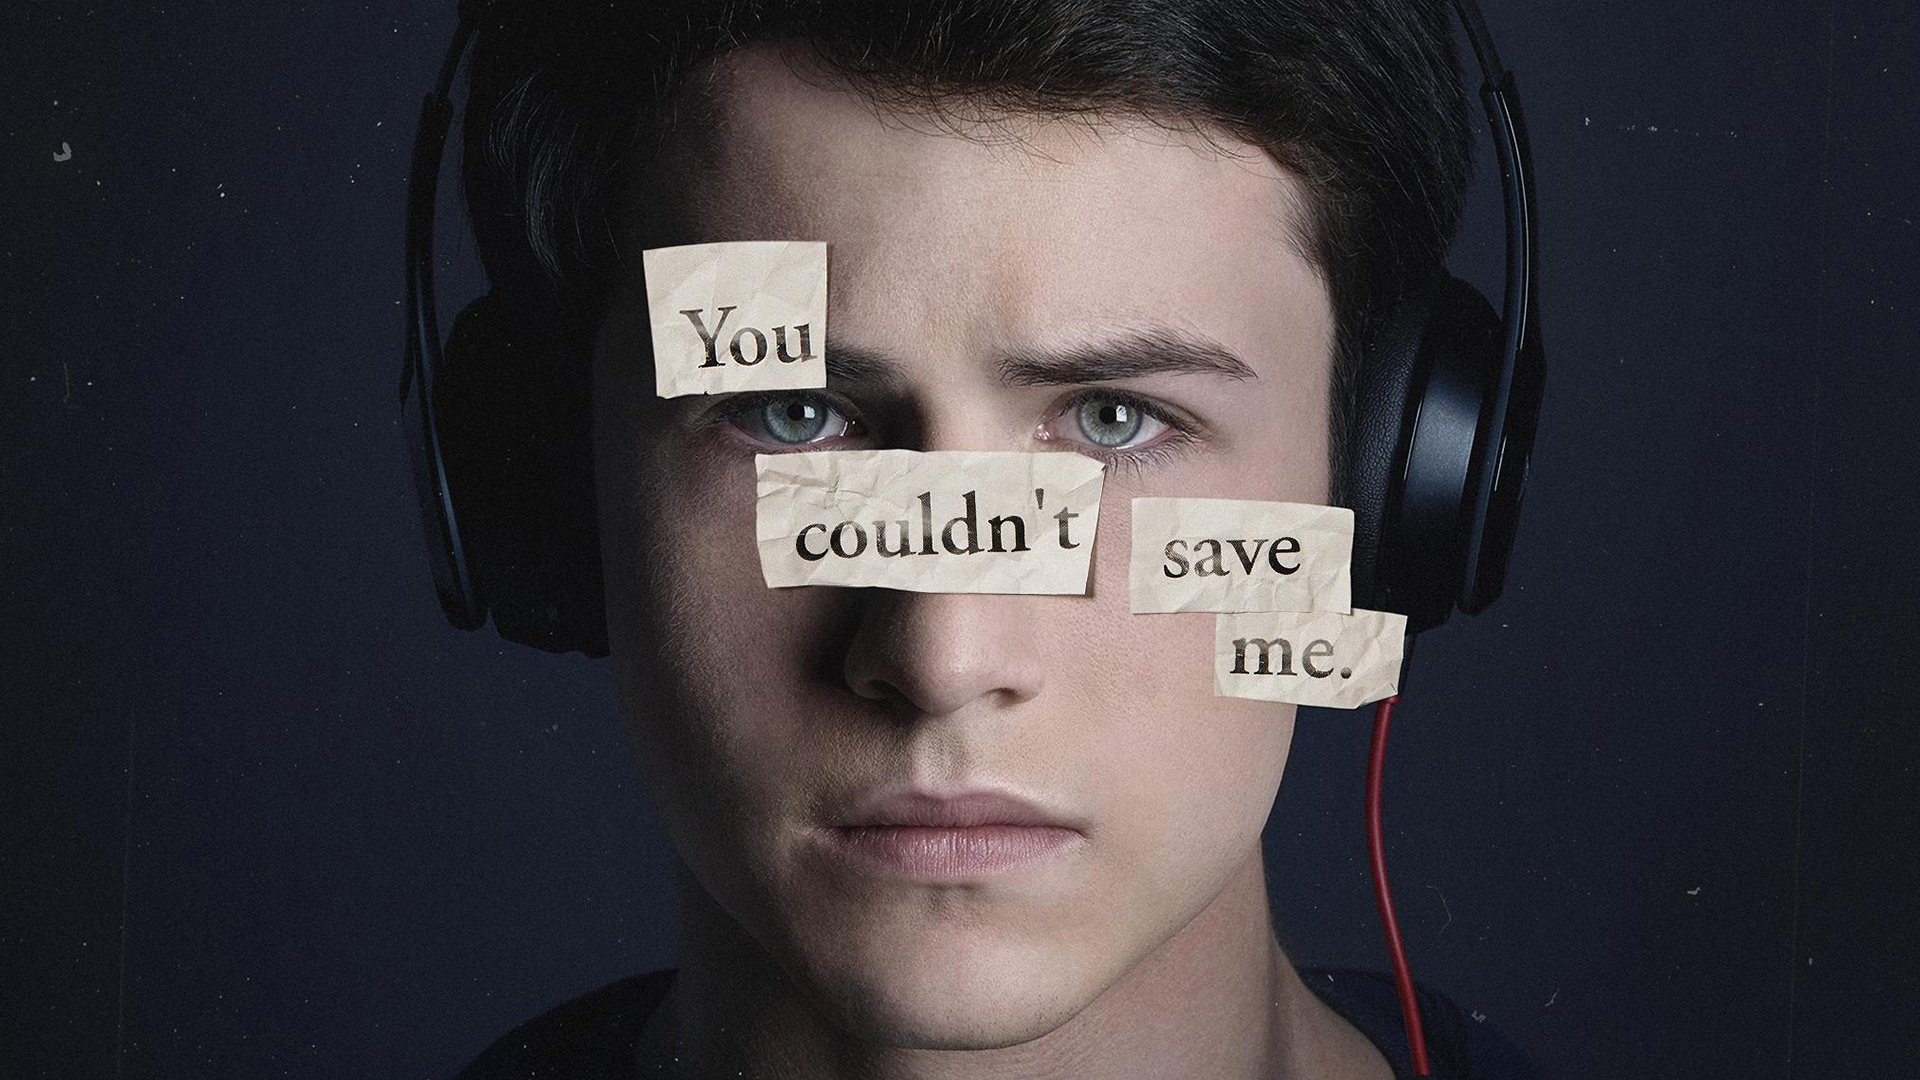 13 reasons why (netflix series) images 13 reasons why hd fond d